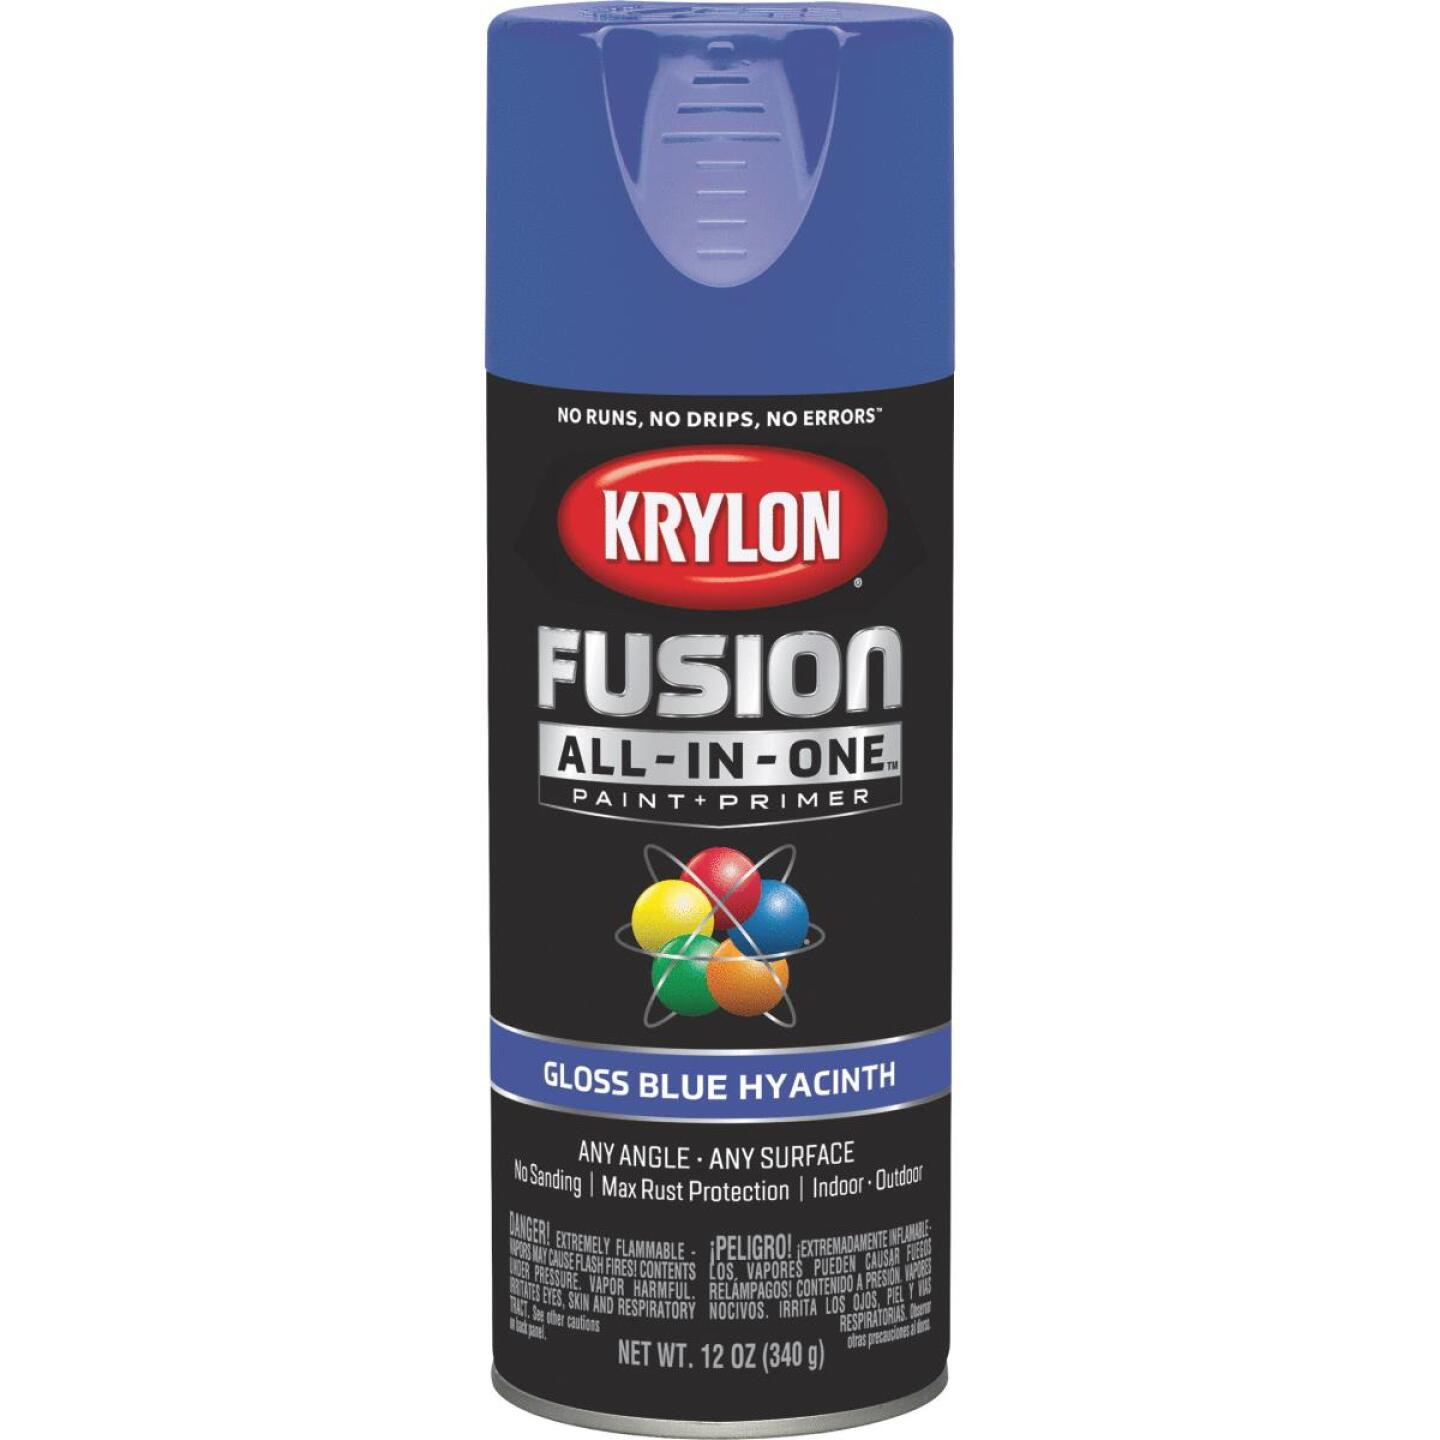 Krylon Fusion All-In-One Gloss Spray Paint & Primer, Hyacinth Blue Image 1